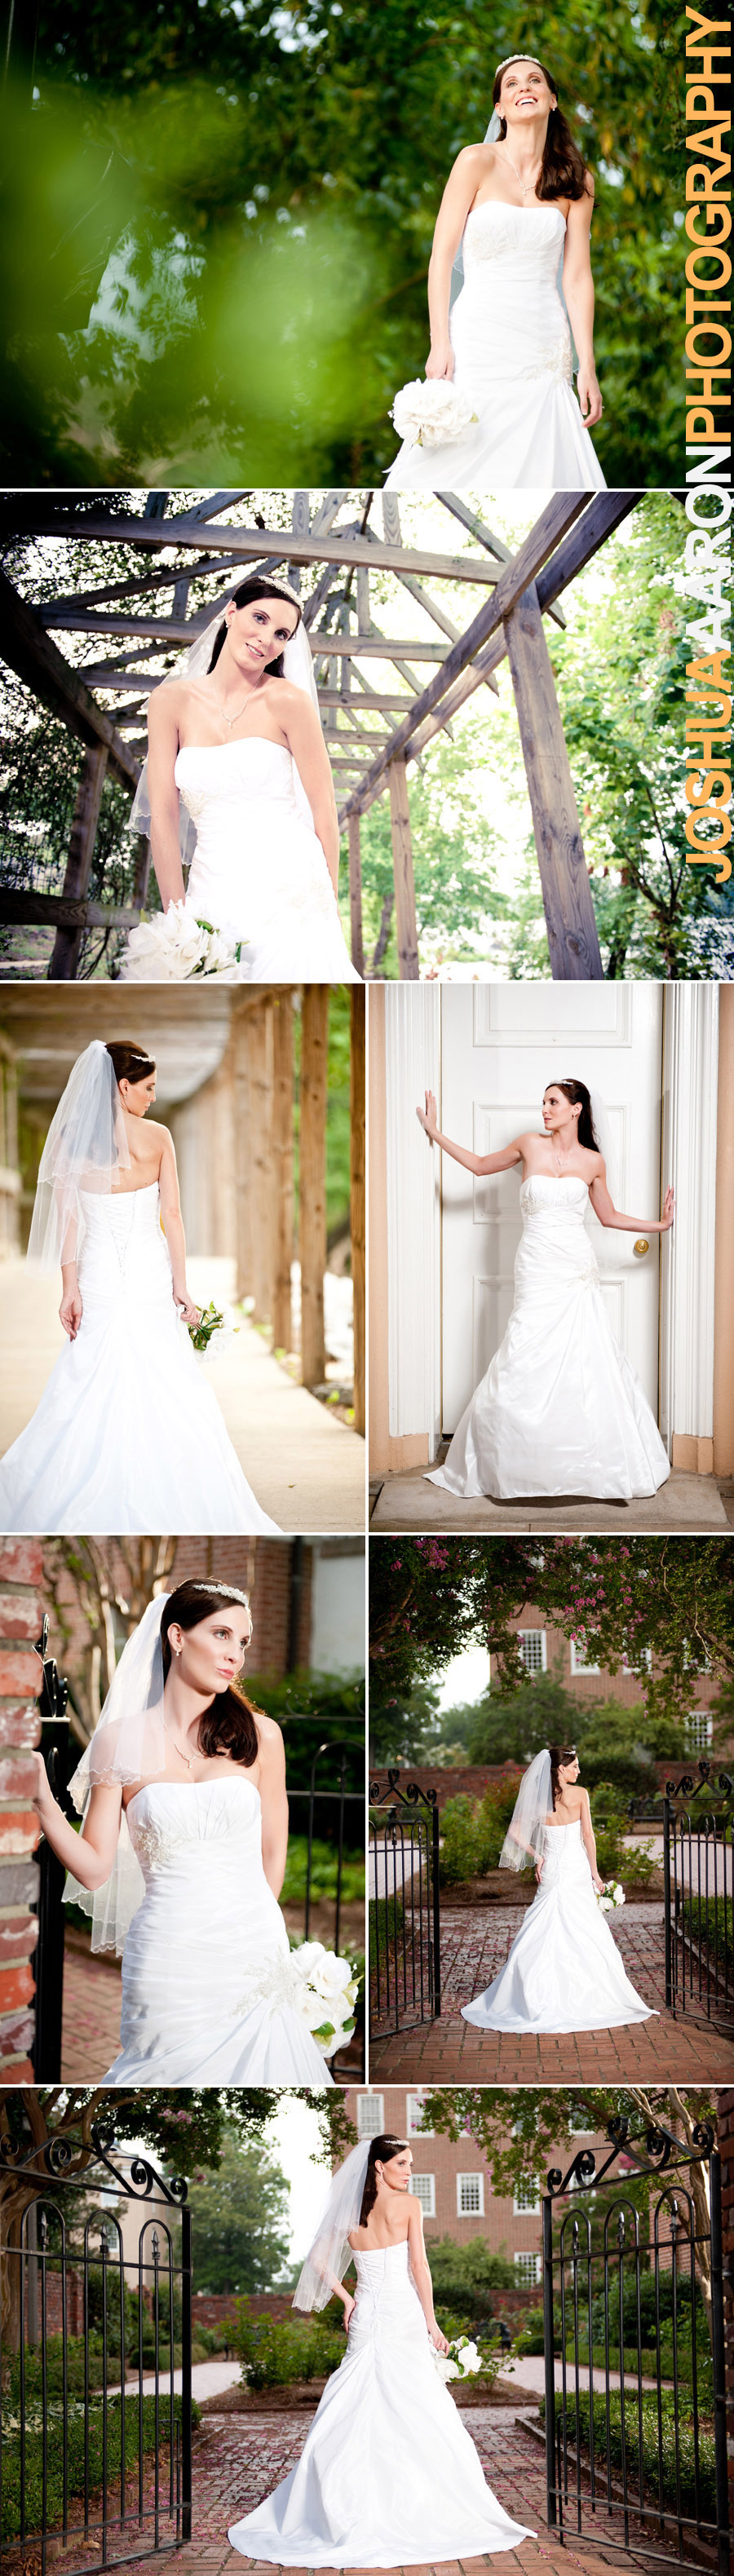 Bridal portraits at the USC horseshoe